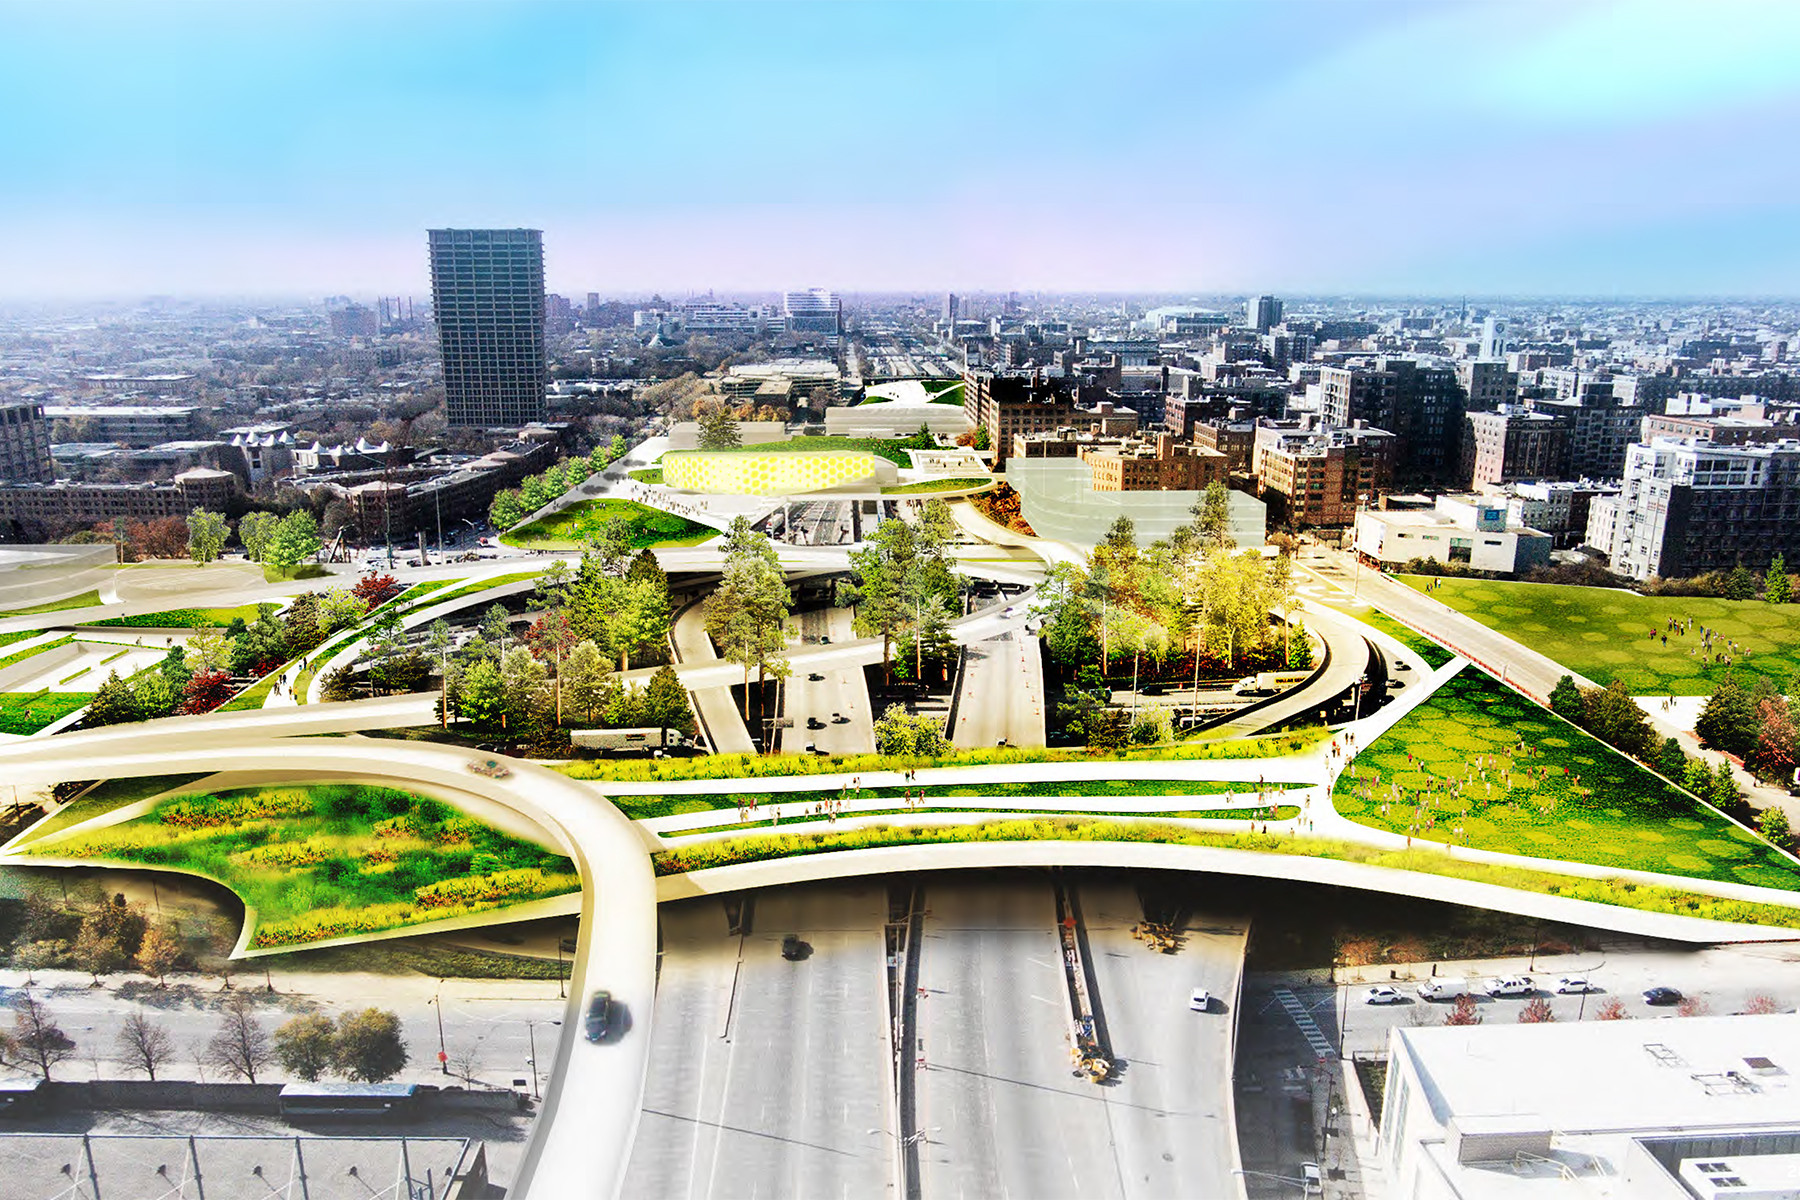 Four Presidential Libraries for Obama to Consider , University of Illinois at Chicago. Image Courtesy of UIC